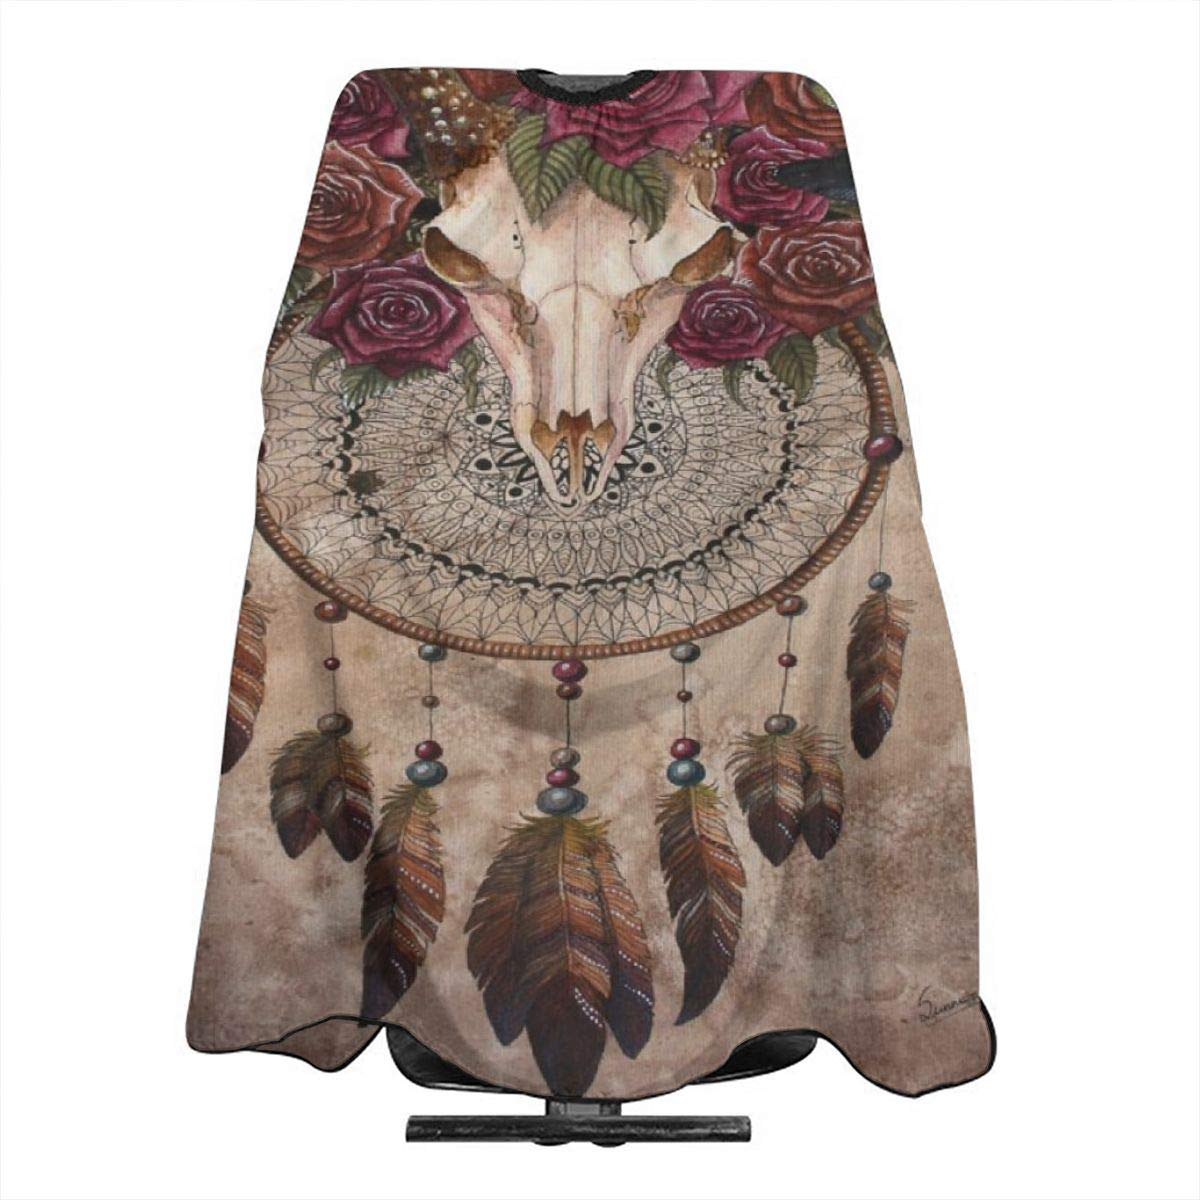 Beautiful Sheep Skull Barber Cape Haircut Gown Professional/Home Salon Hair Cutting Hairdressing Hairdresser Apron for Adult/Women/Men by OuLian